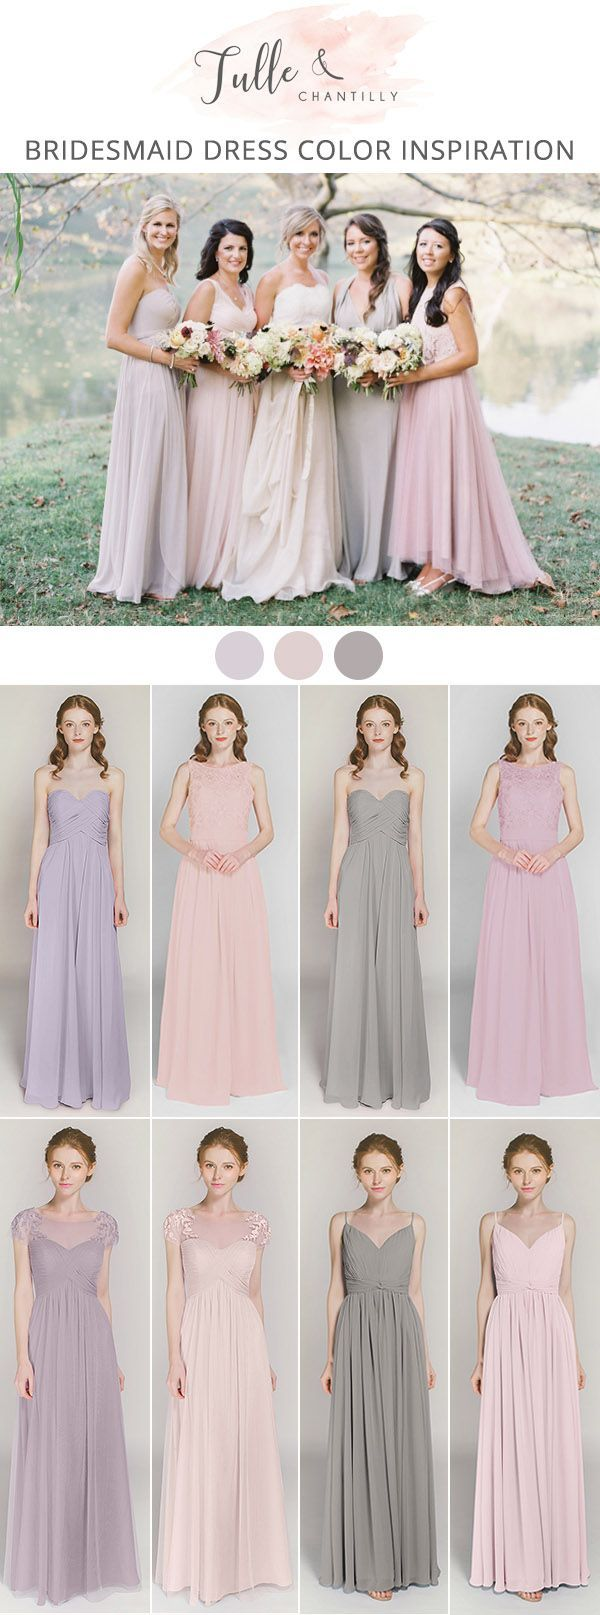 209 best bridesmaids images on pinterest bridesmaids marriage long short bridesmaid dresses from 89 in size 2 30 and 100 color ombrellifo Images